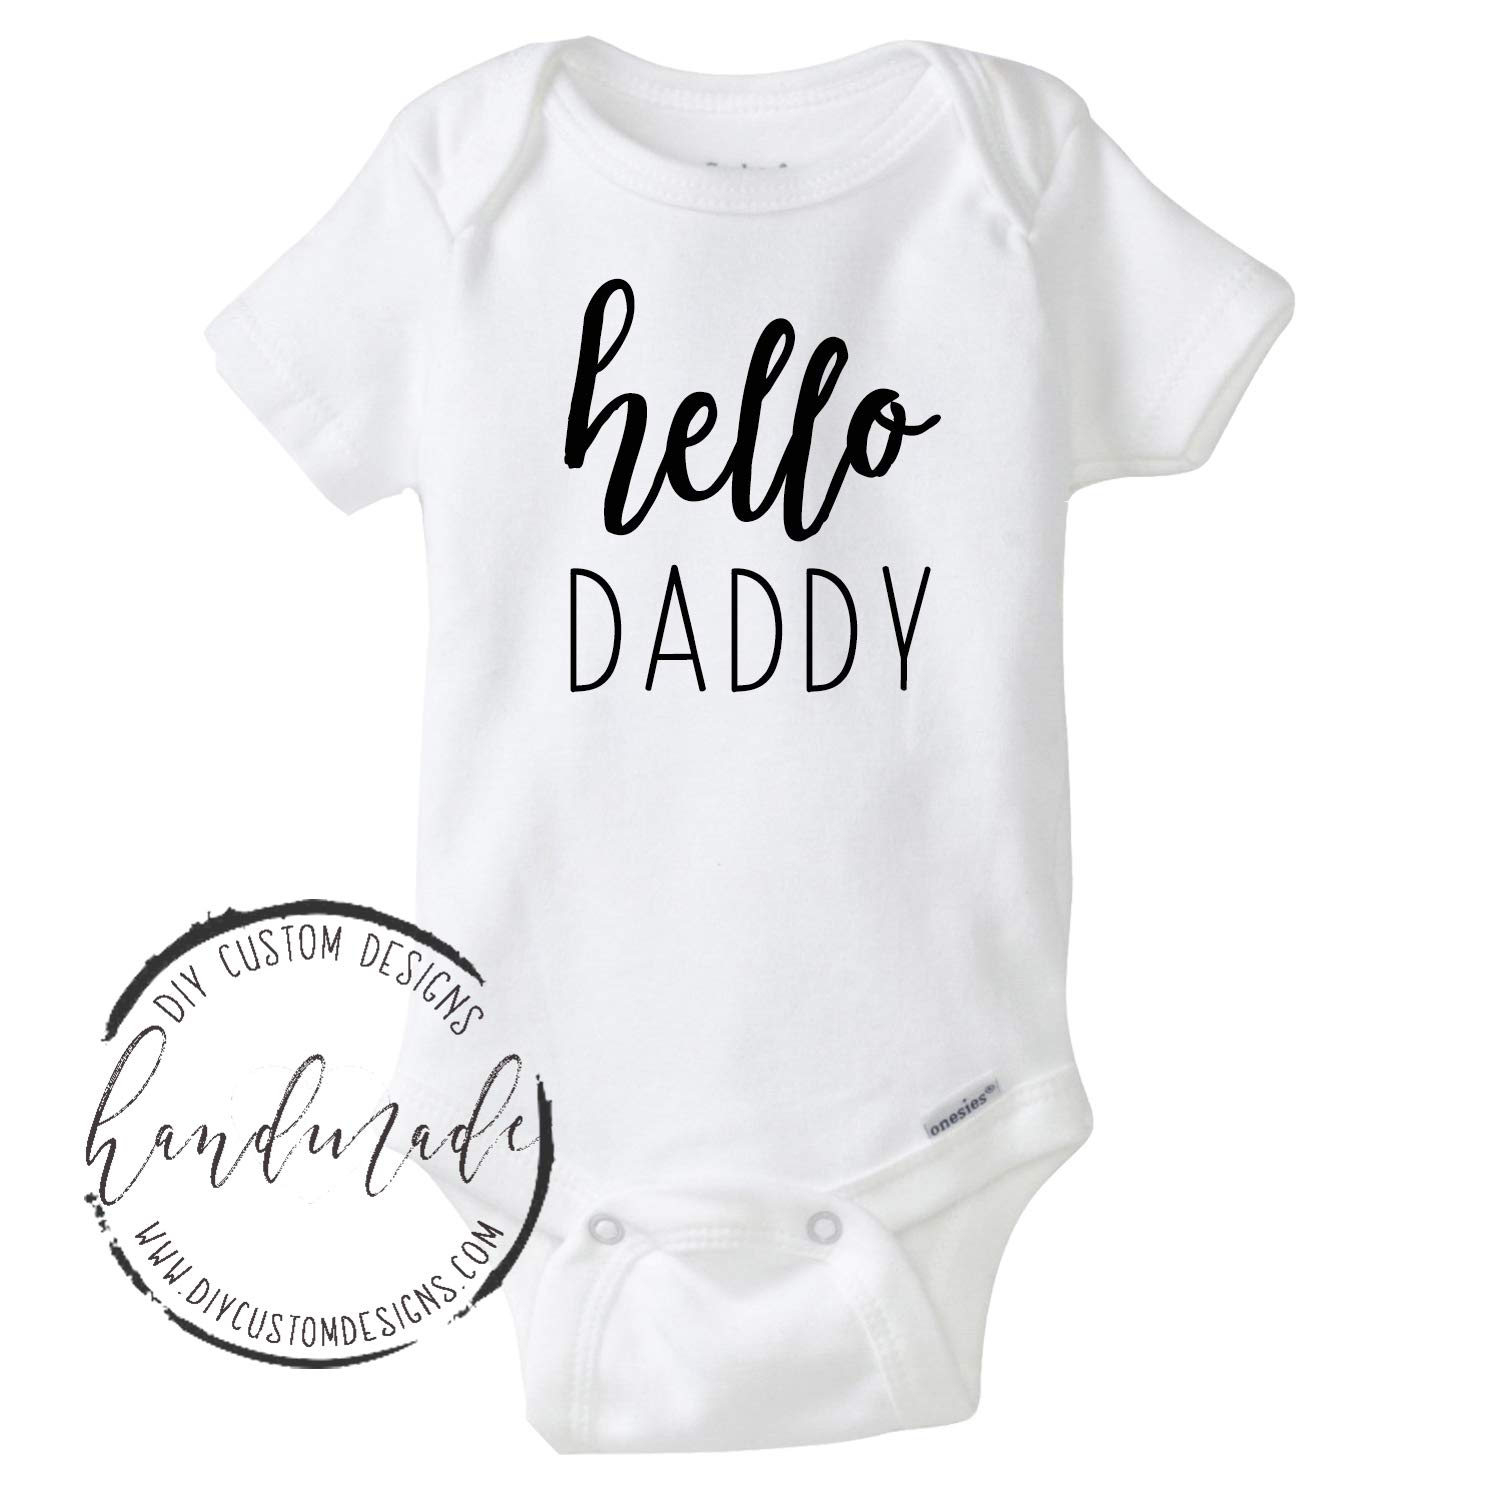 c0403fc1b Amazon.com: Hello Daddy Baby Onesie®, Baby Announcement Onesie, Pregnancy  Announcement, Pregnancy Reveal to Husband, Going to be a Dad: Handmade